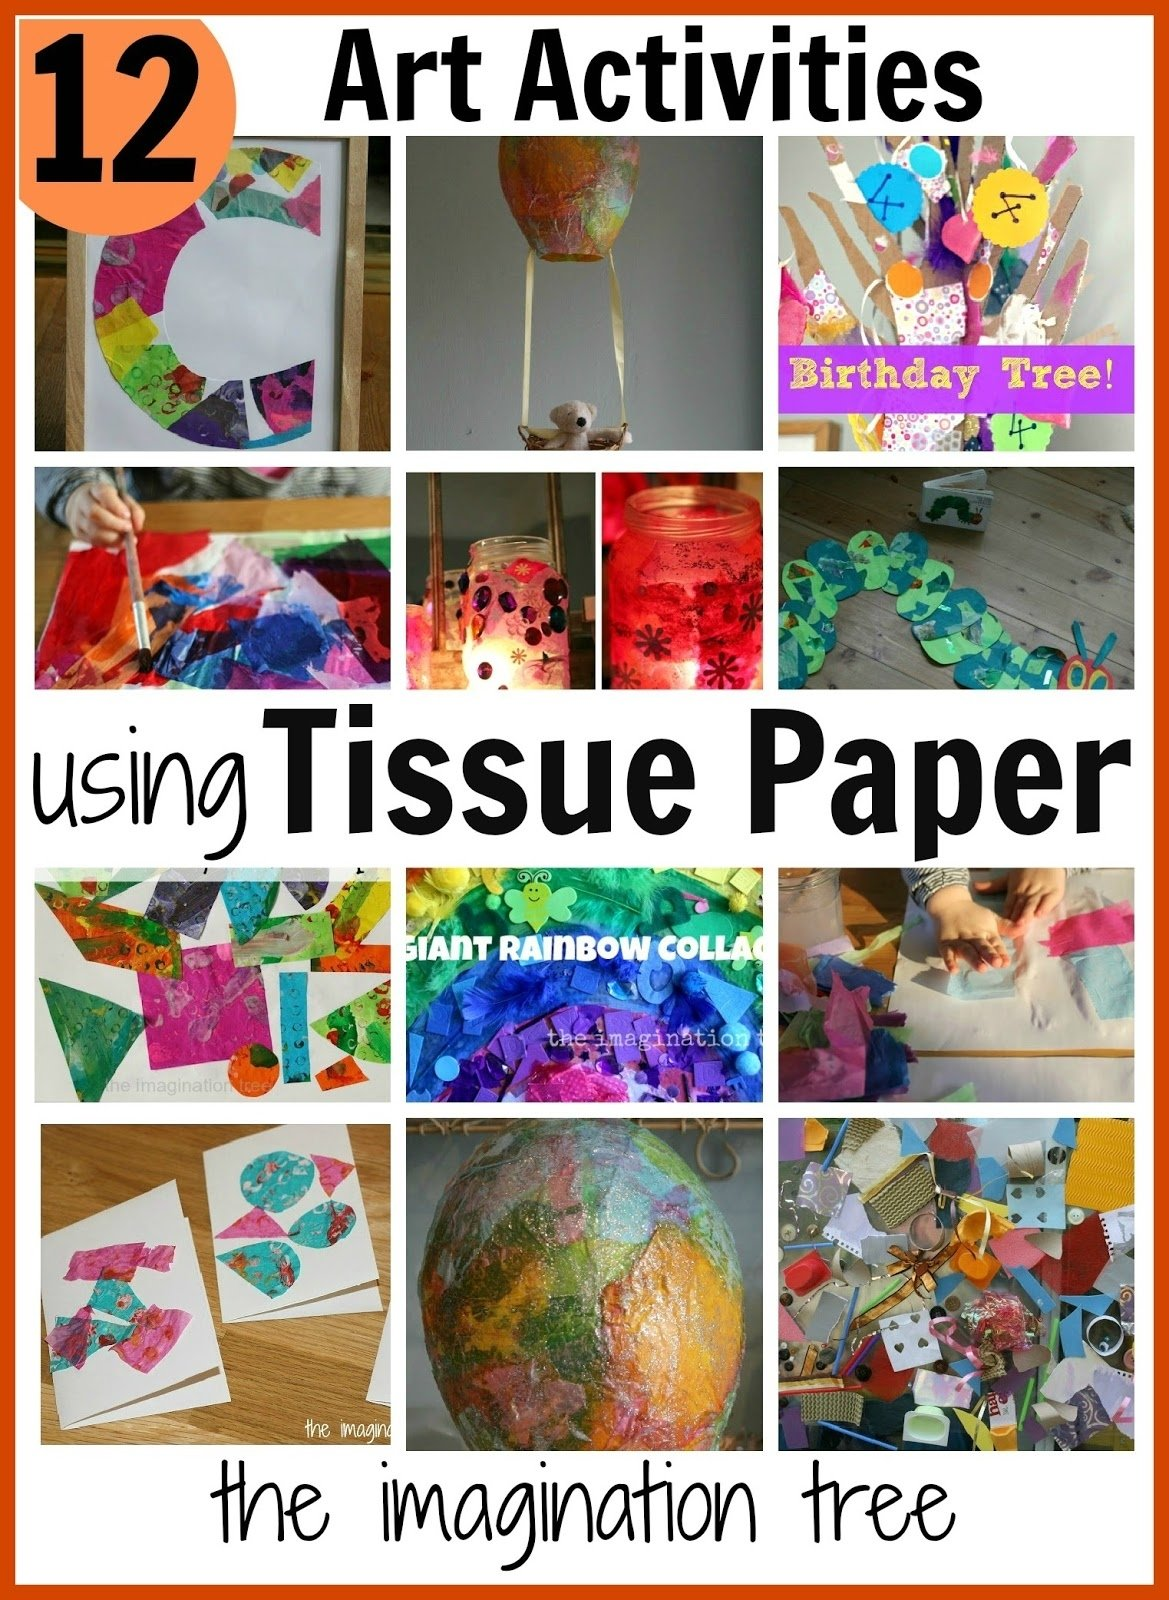 10 Attractive Art Project Ideas For Kids 12 art activities using tissue paper the imagination tree 2021